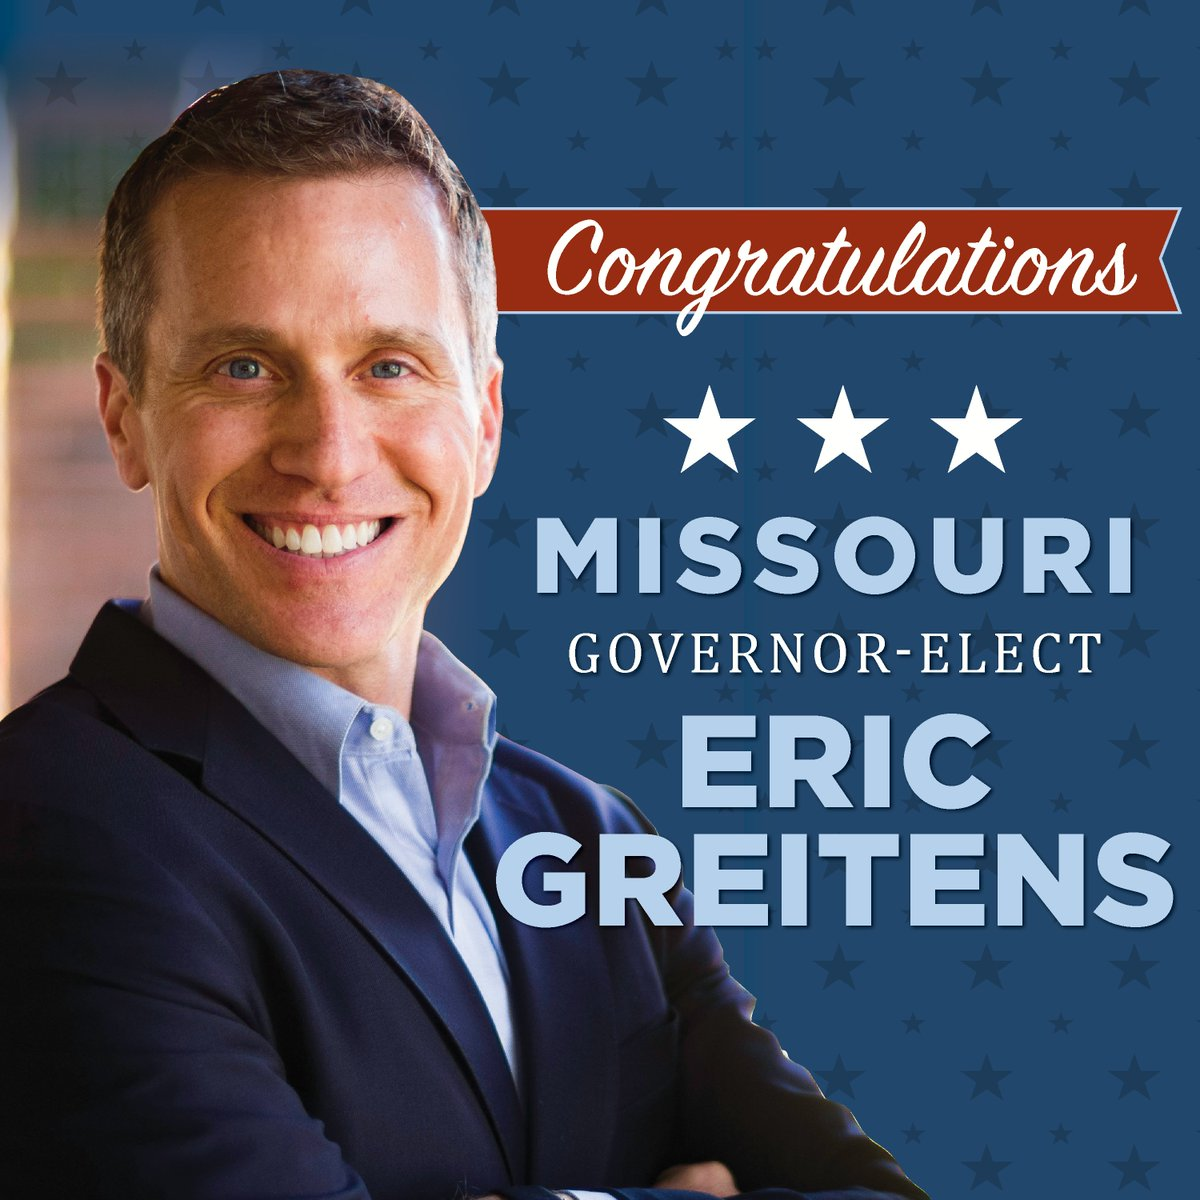 Congratulations to Governor-Elect @EricGreitens On His Victory In Missouri! https://t.co/c6KH8dUUQV #MOGOV https://t.co/7o4mKAC9T2